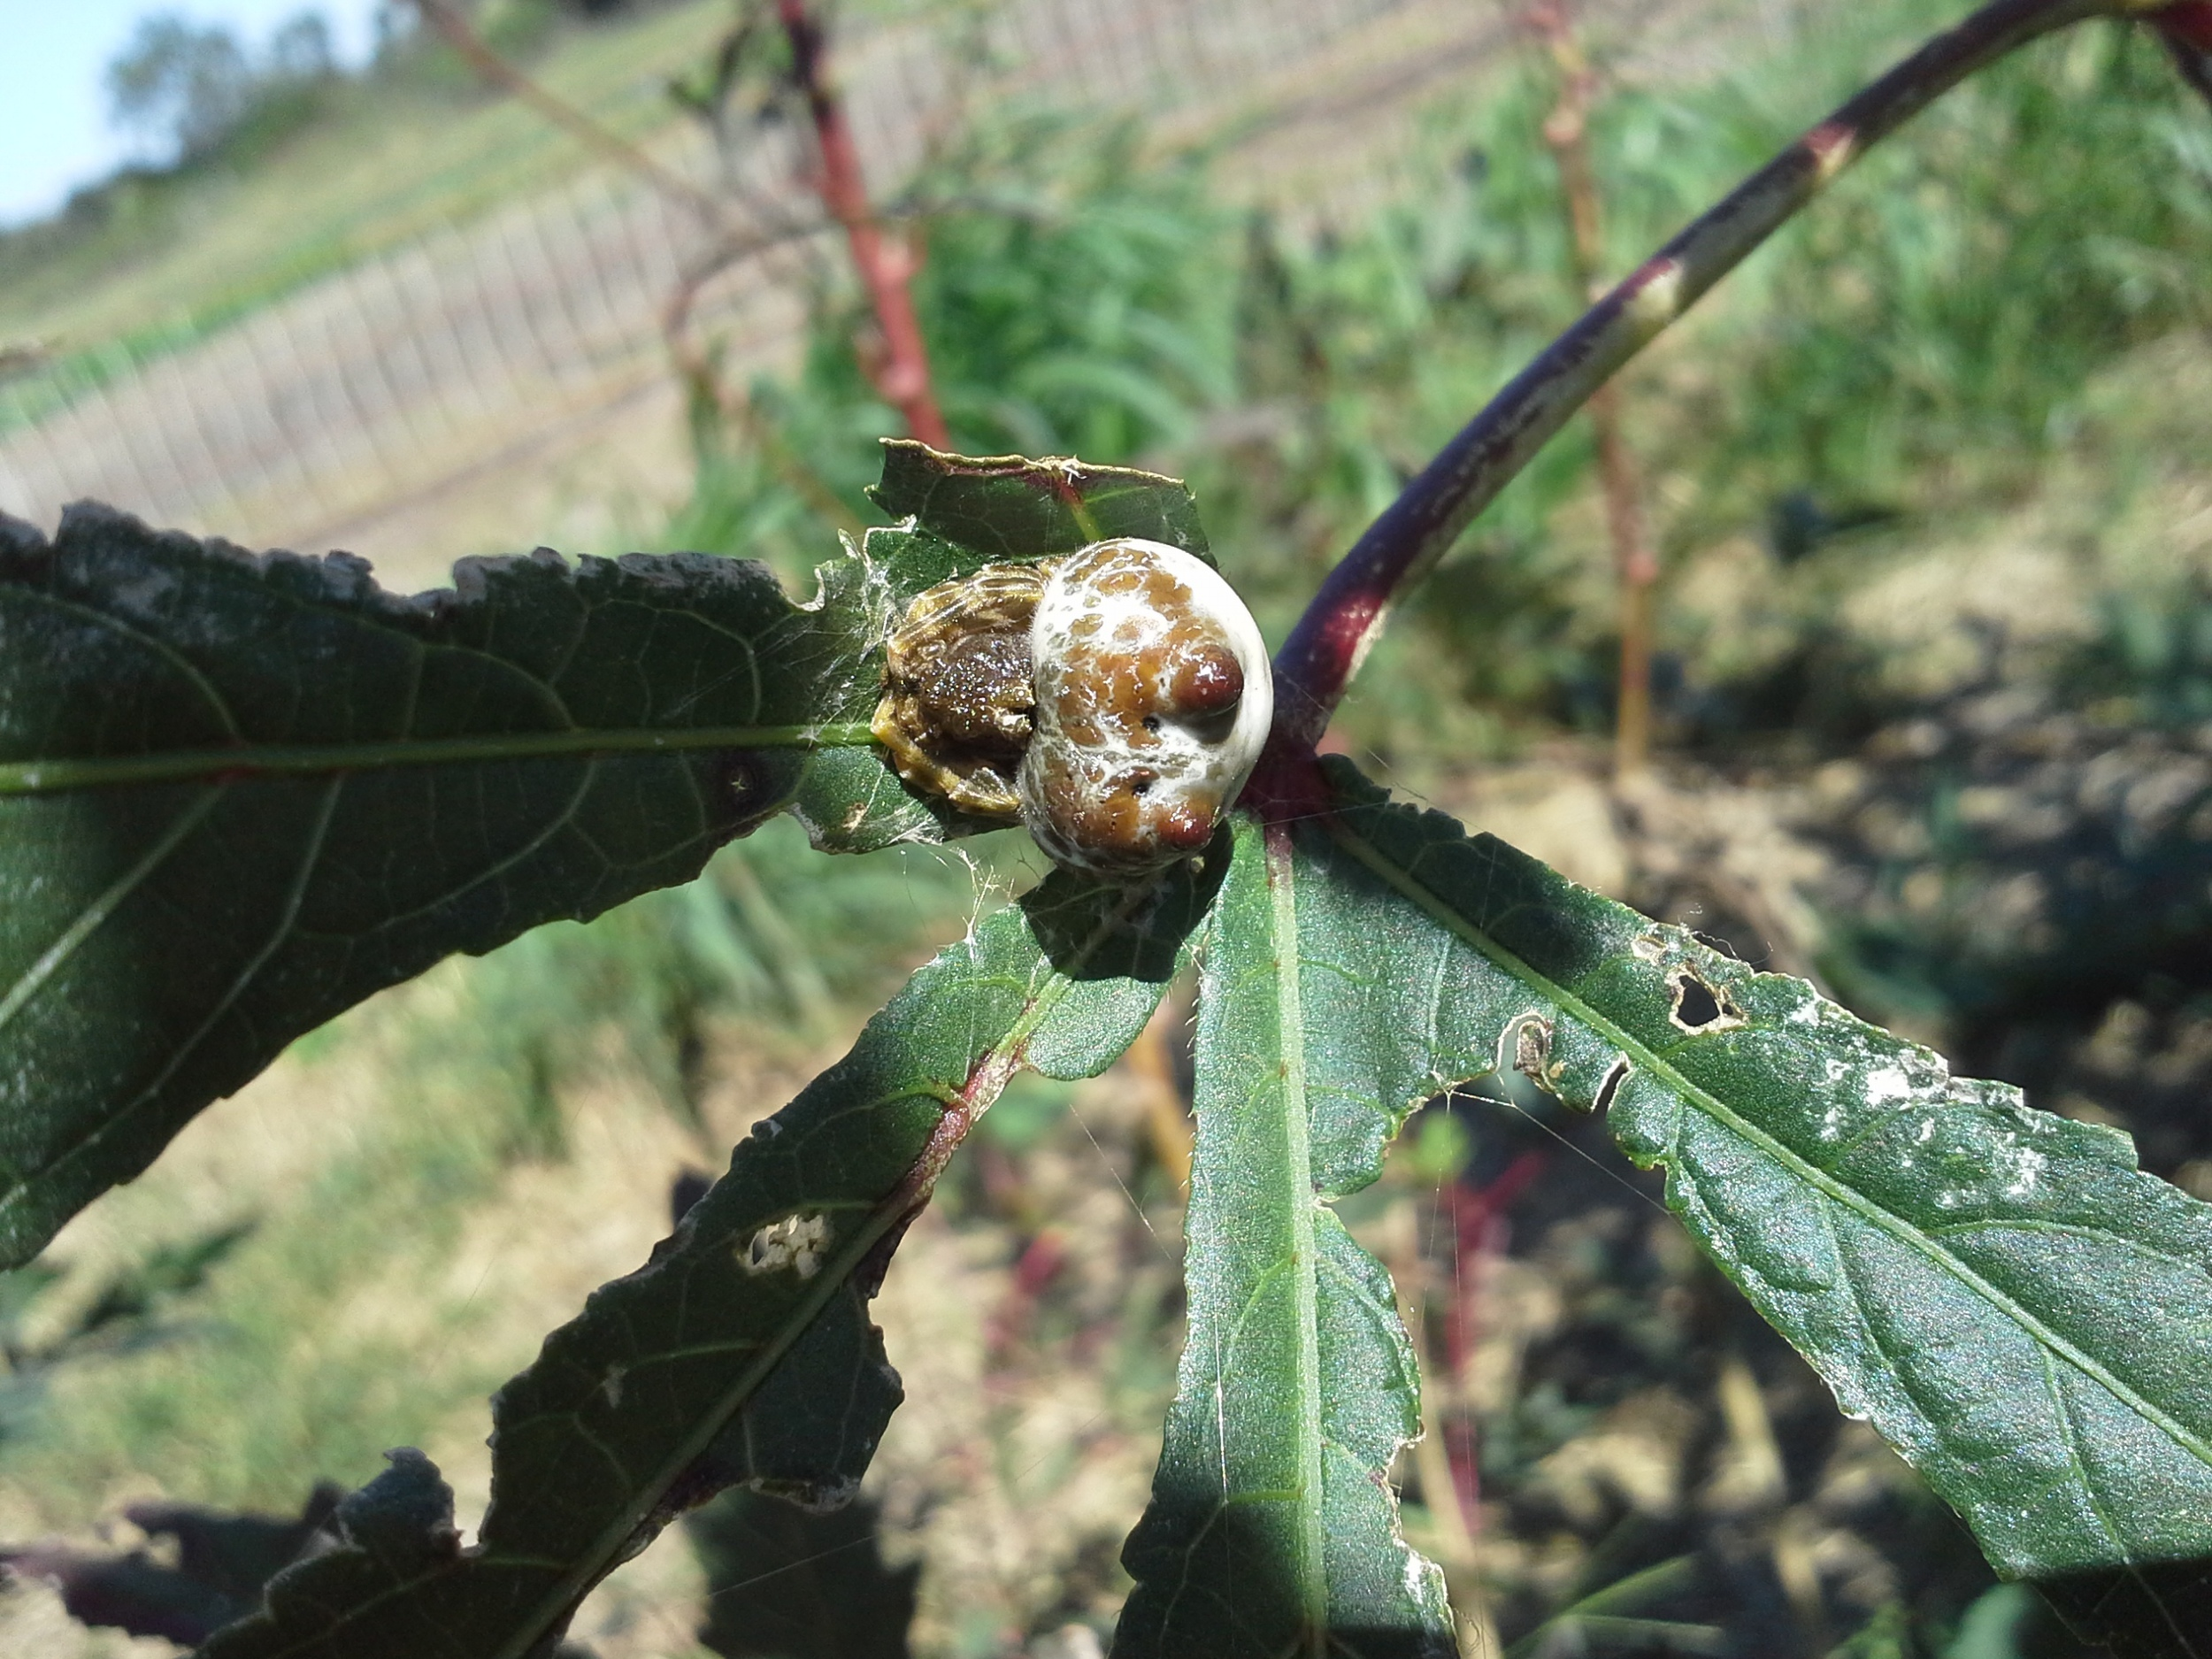 Bolas spider, sleeping in the okra. She dangles a sticky blob of webbing down from the leaves to catch unsuspecting moths and the like before wrangling them to her mouth. Creepy and amazing!